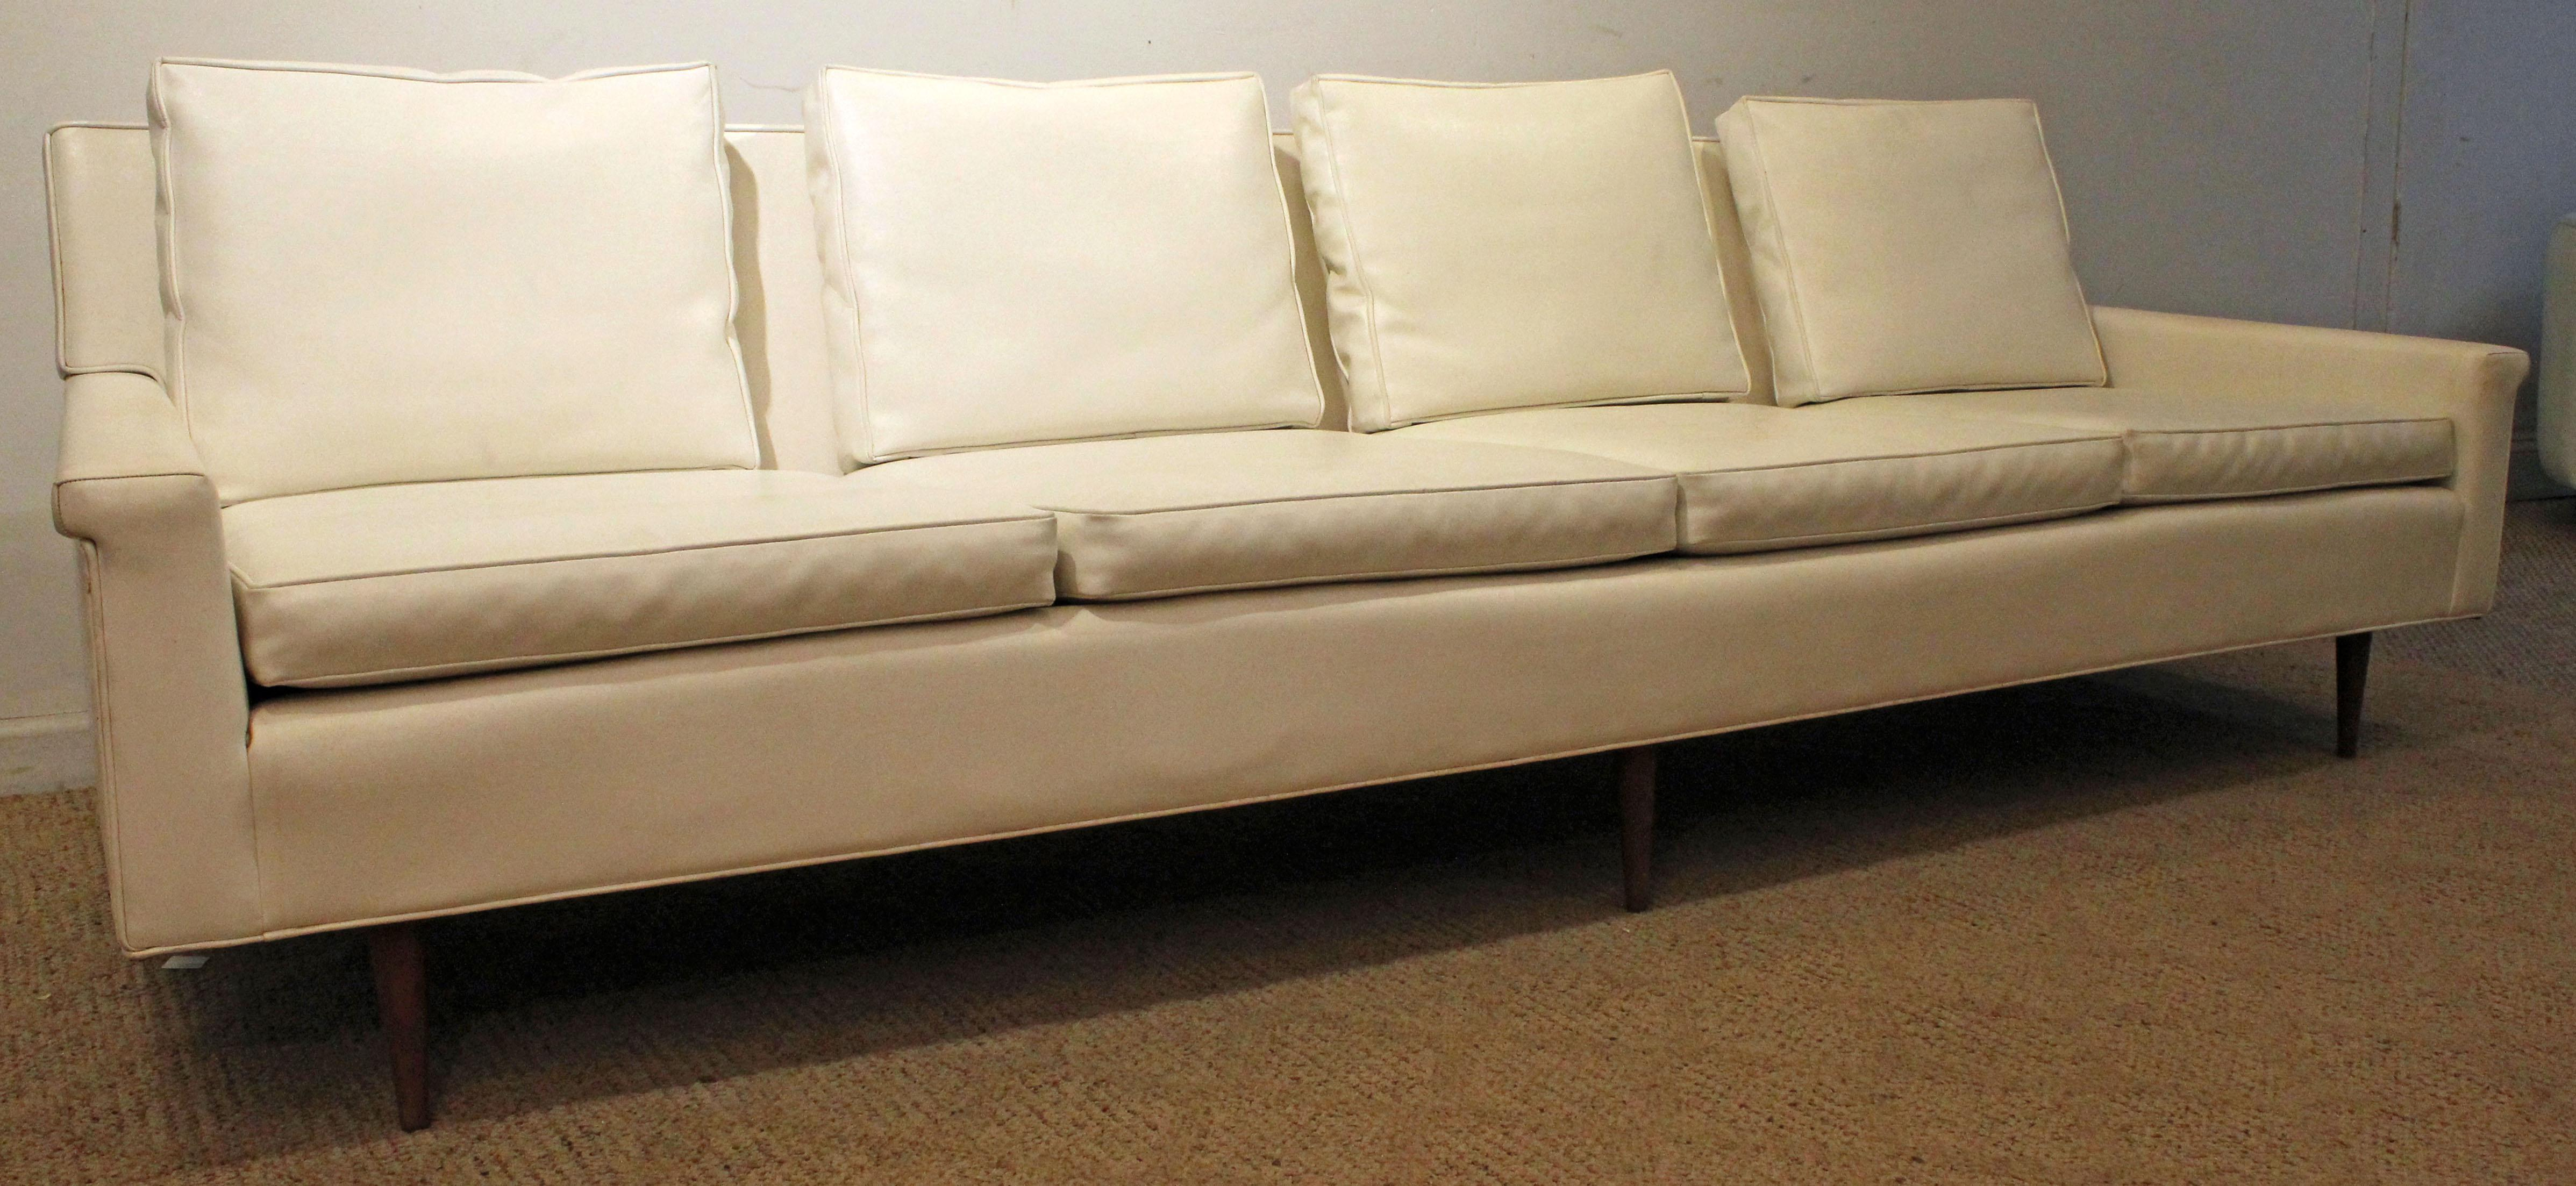 mid century danish modern couch. Offered Is A Vintage Mid-Century Danish Modern Milo Baughman Thayer Mid Century Couch